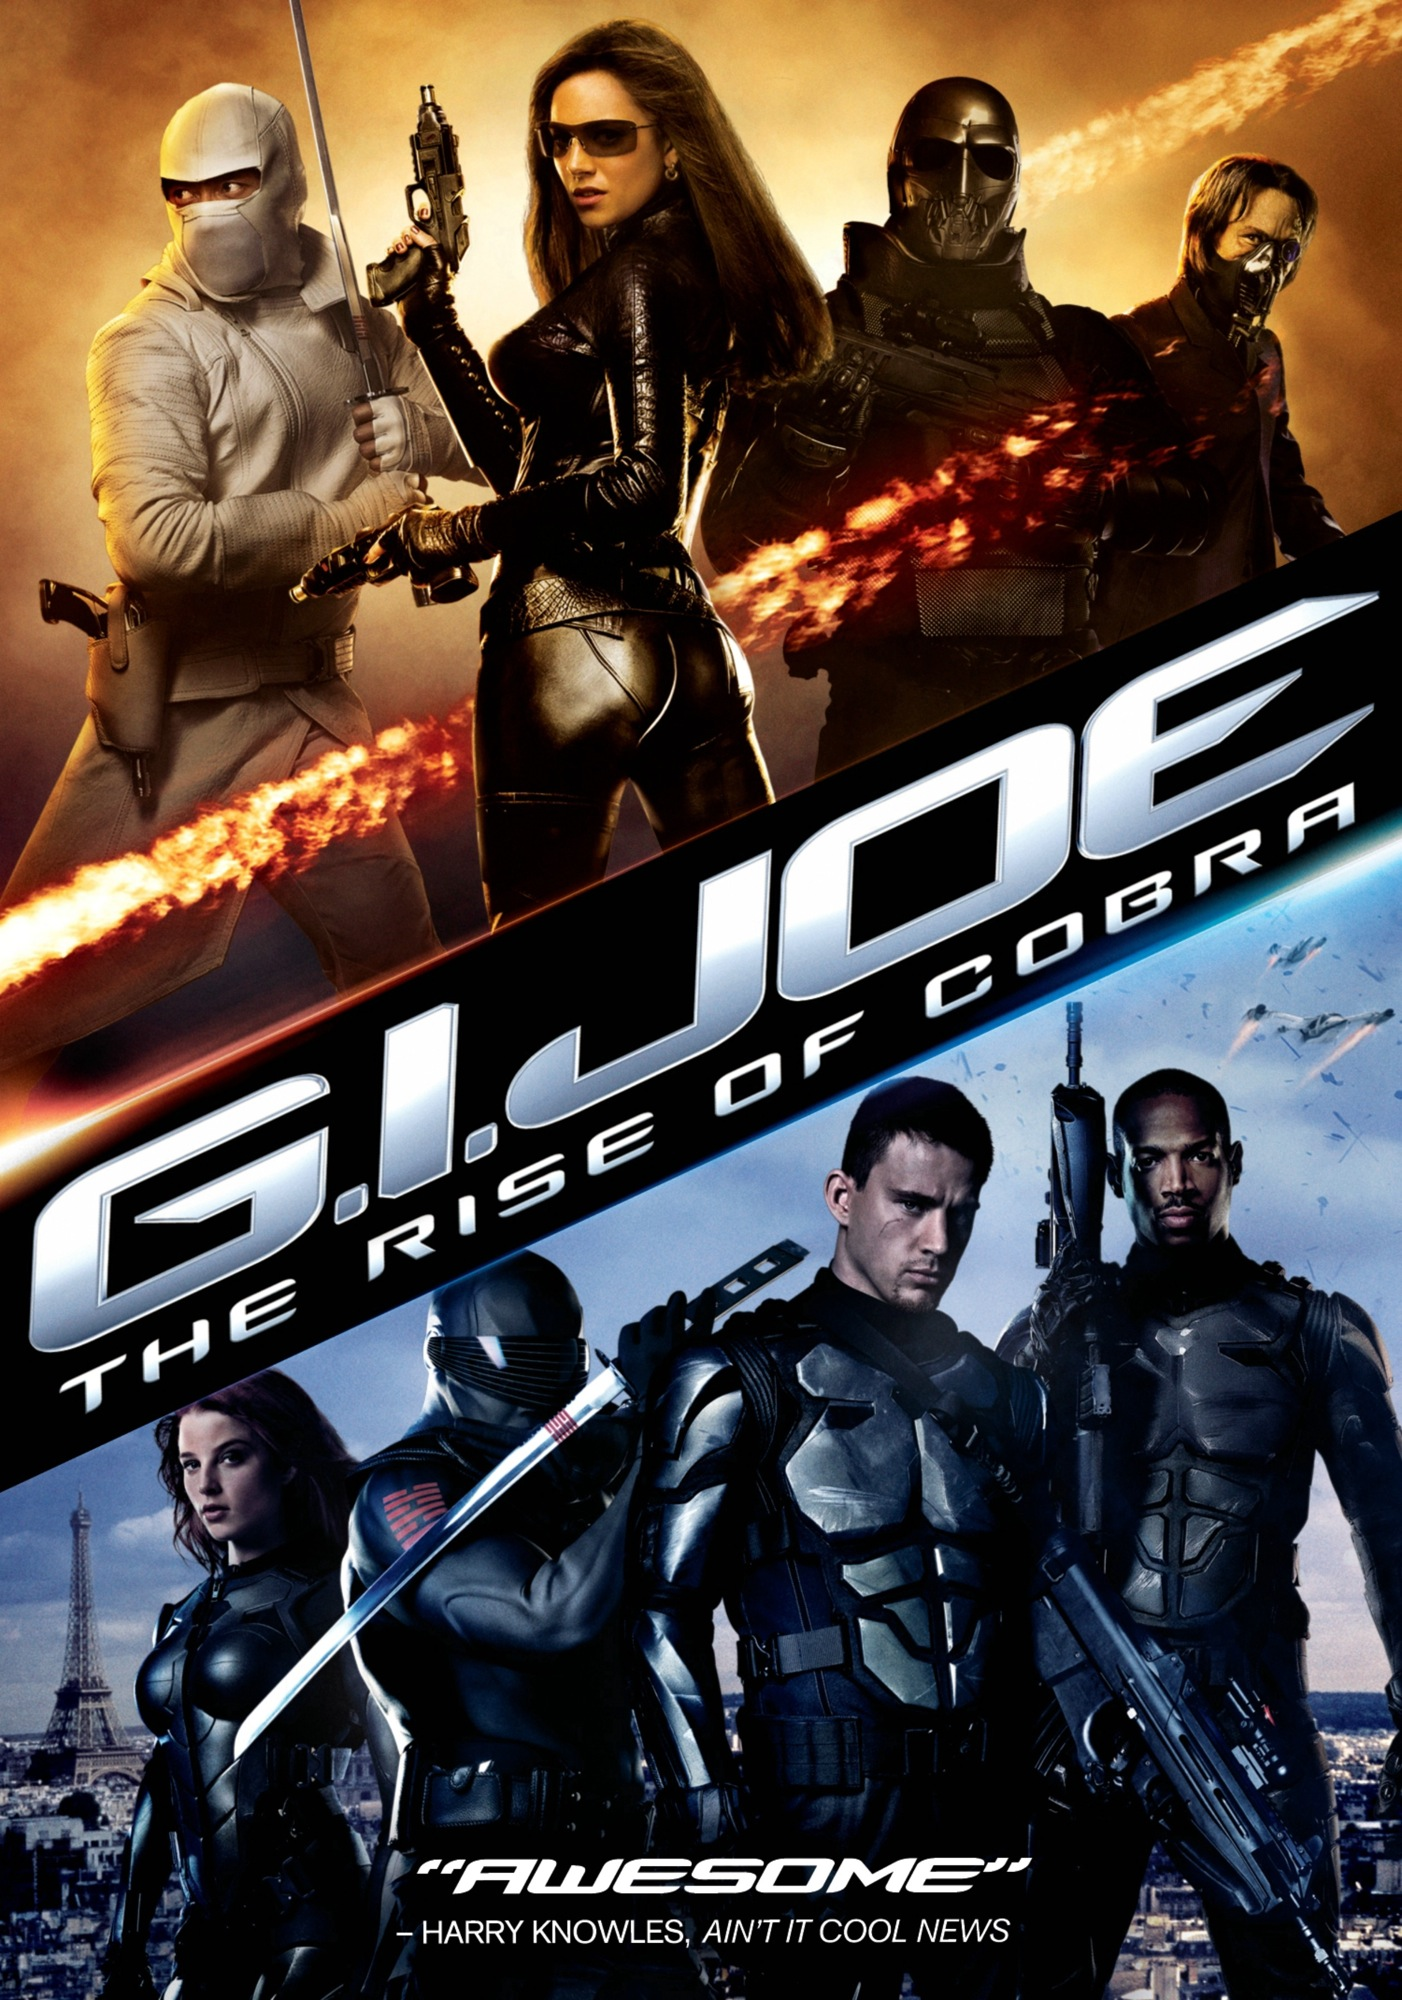 Title: G.I. Joe: The Rise of Cobra Director: Stephen Sommers Writers: Stuart Beattie, David Elliot, Paul Lovett Distributed By: Paramount Pictures Starring: Channing Tatum, Marlon Wayans, Sienna Miller, Christopher Eccleston,...